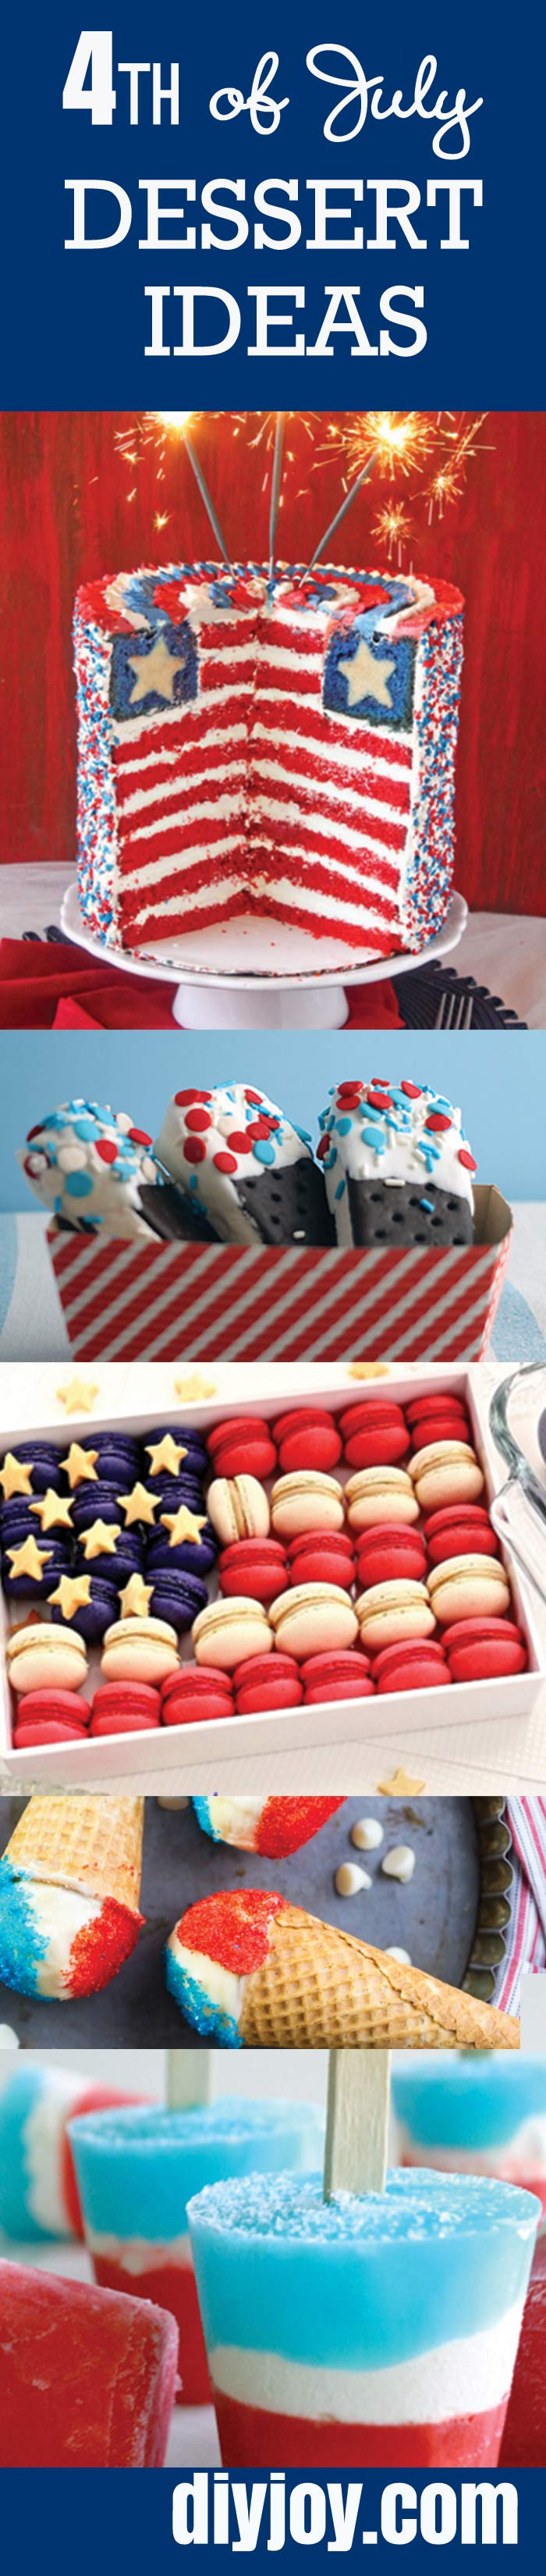 4th of July Dessert Ideas | Best Dessert Ideas for DIY Parties | DIY Projects & Crafts by DIY JOY #fourthofjuly #july4th #desserts #recipes